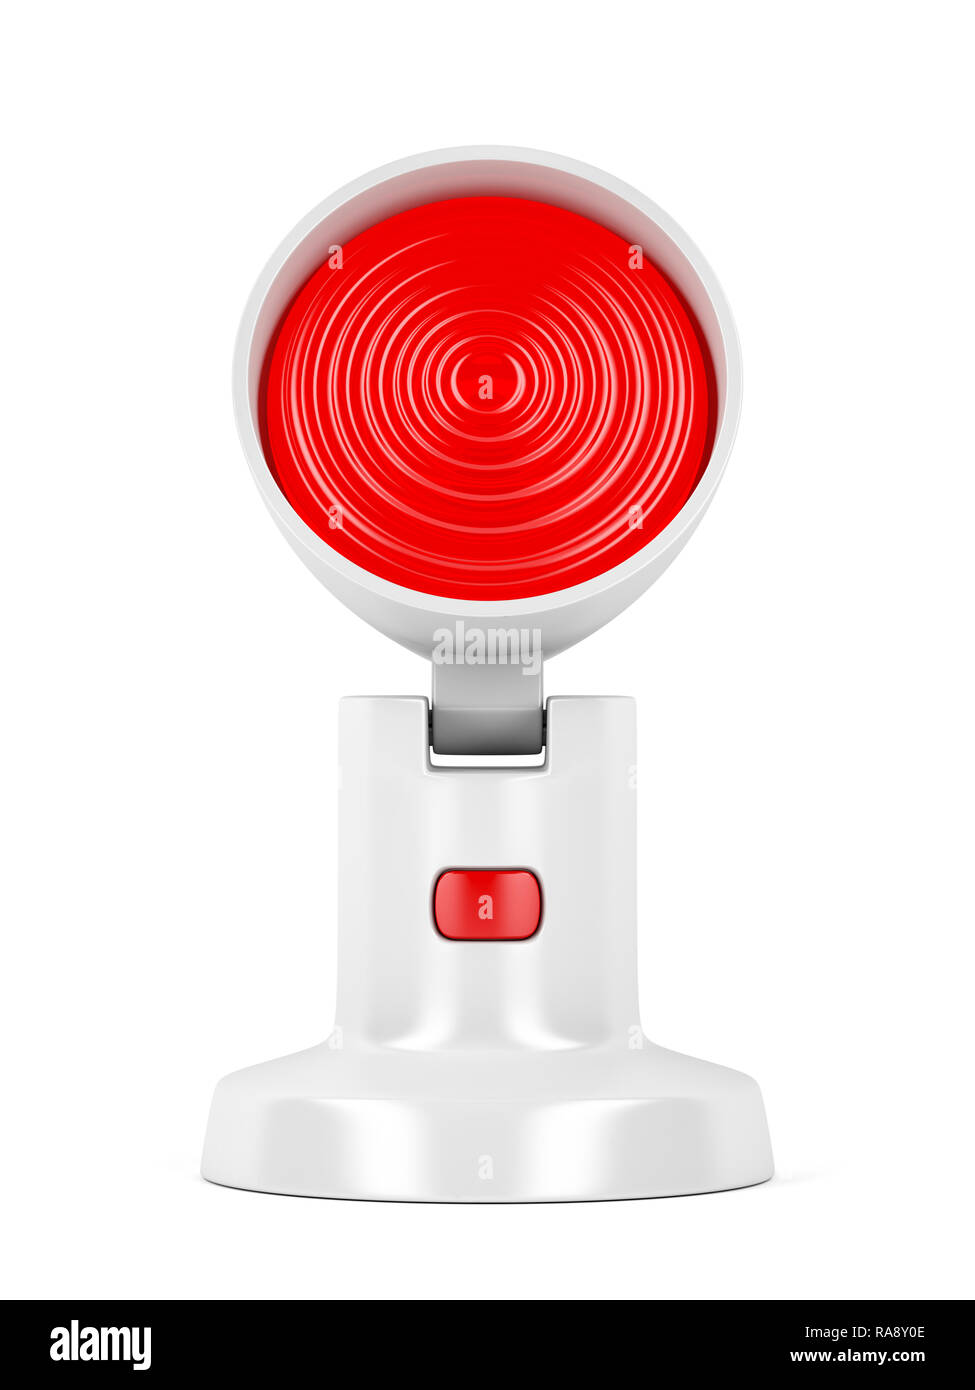 Infrared lamp on white background - Stock Image